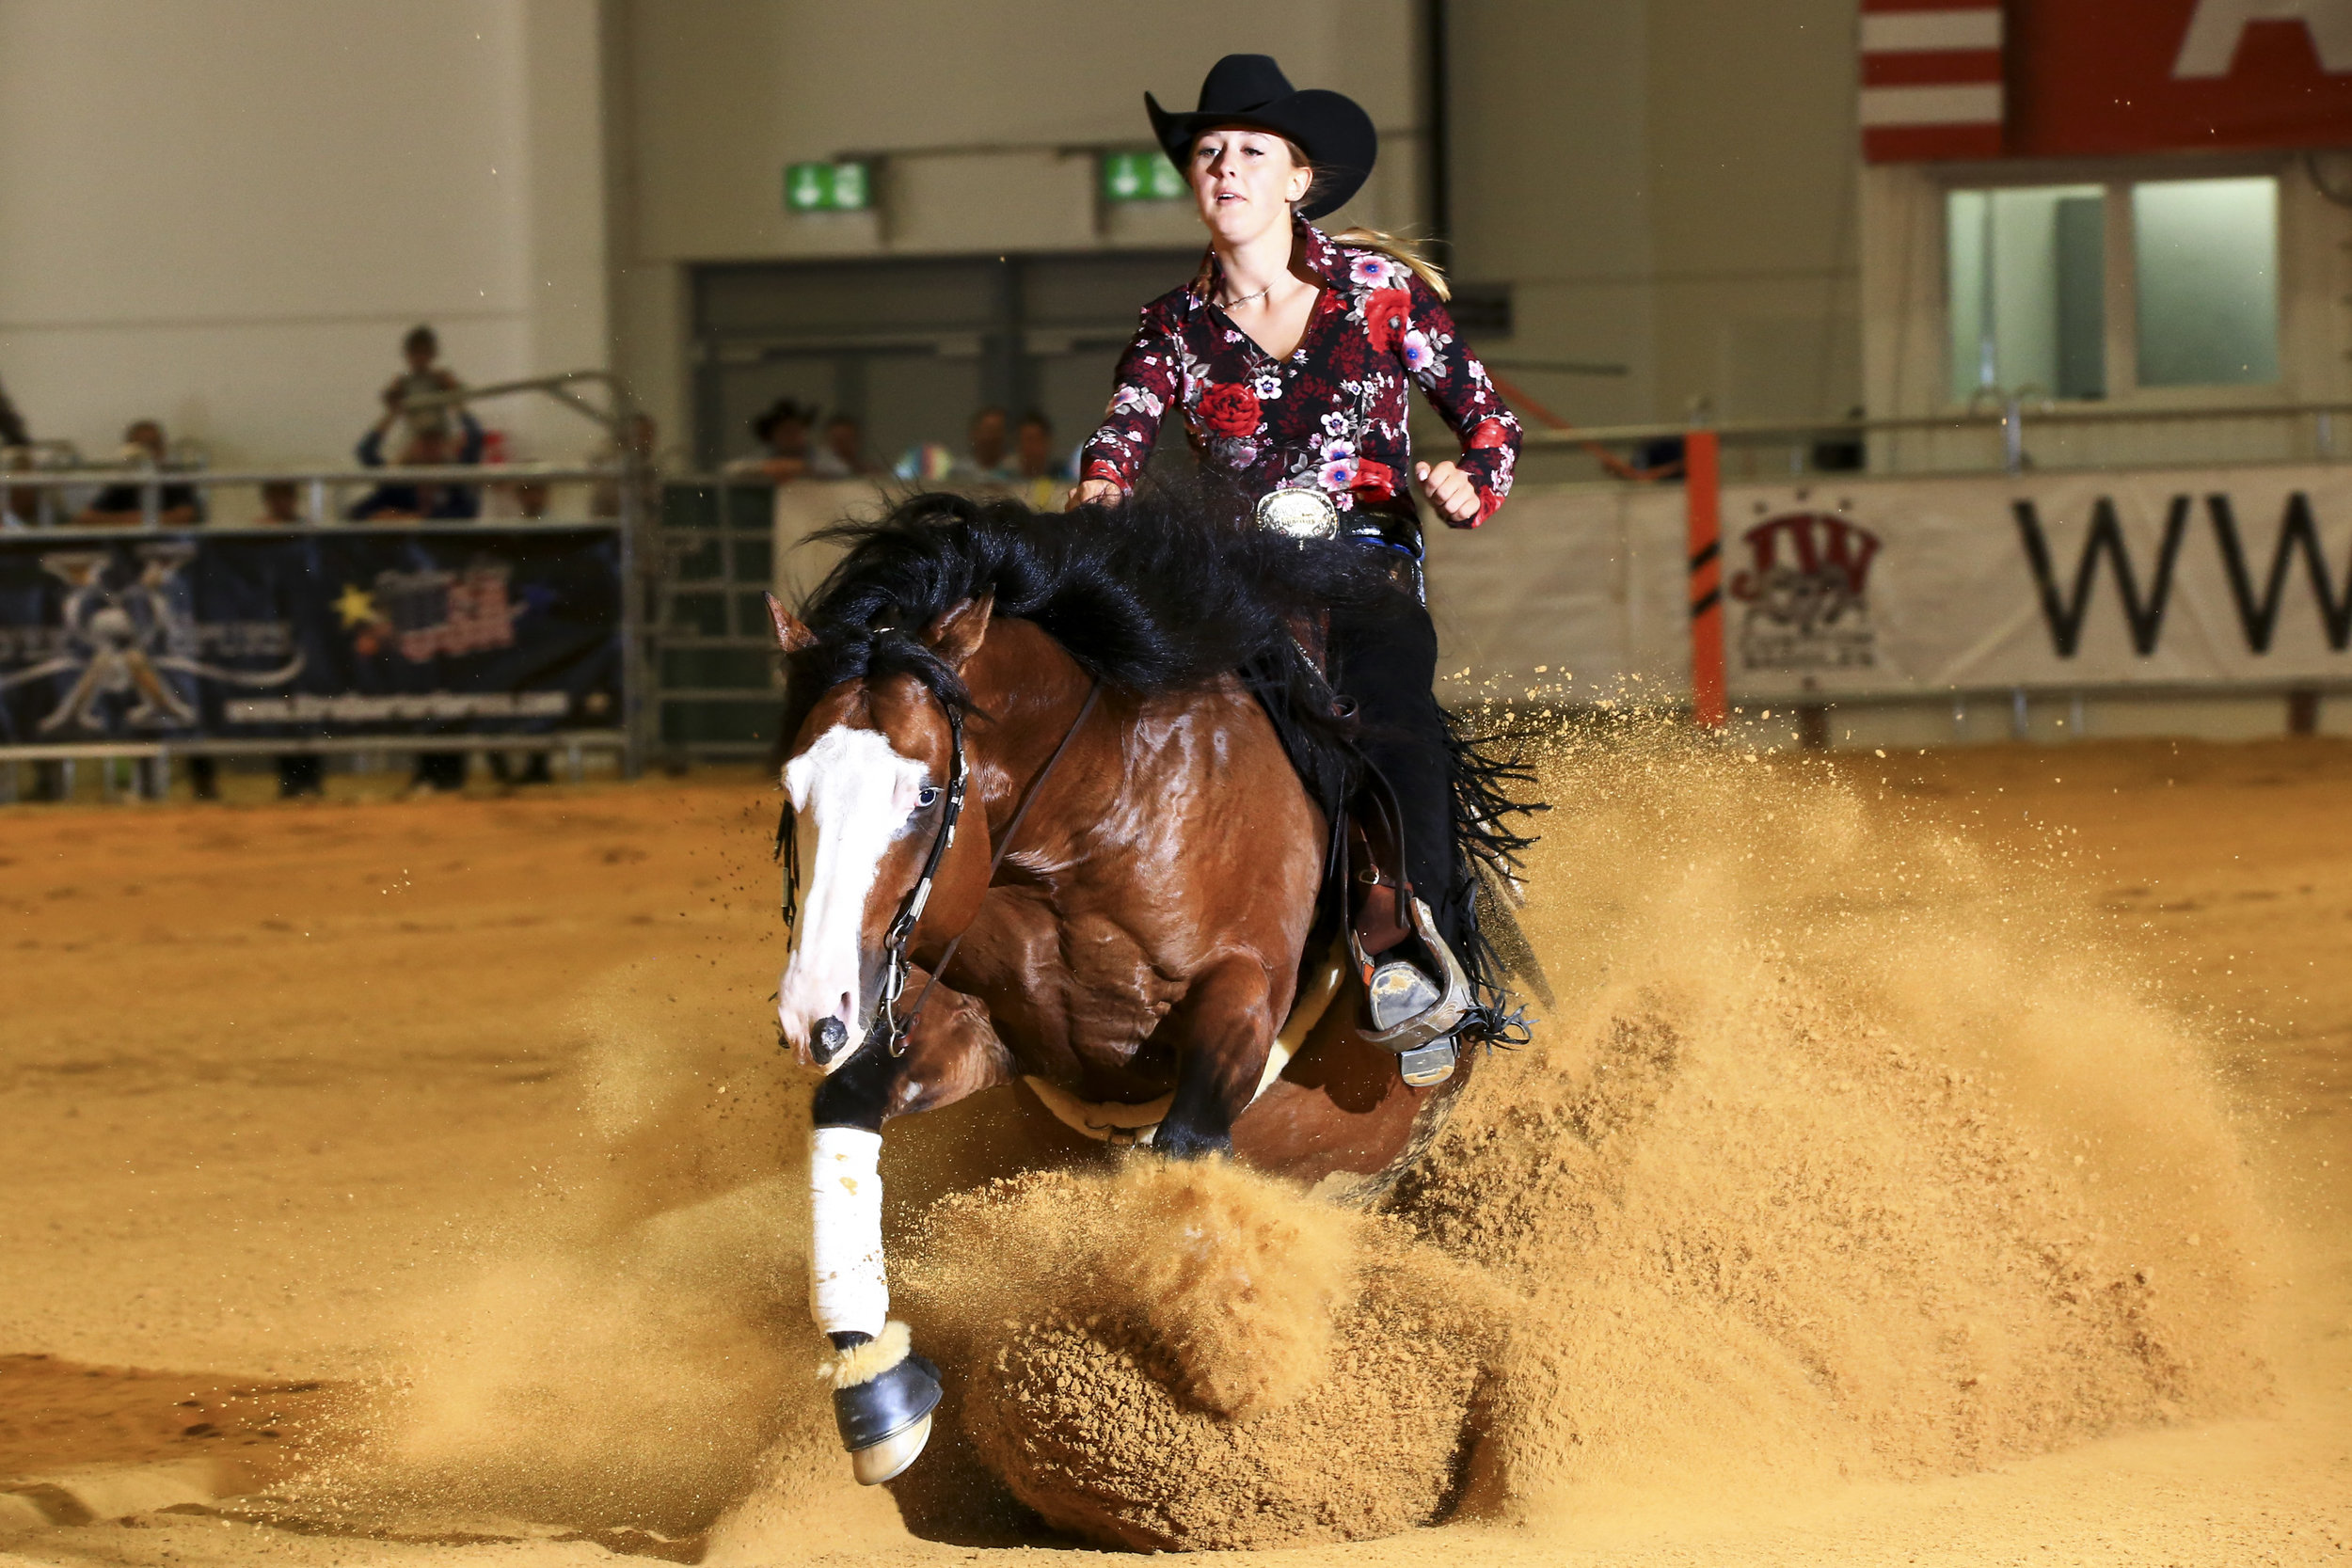 Gina-Maria Schumacher takes Lead in World Cup Bronze Trophy Non Pro Go round - The final of the World Cup Bronze Trophy Non Pro on Sunday should be a sight to see after this great go round! Ten riders in a field of 37 made it to the final, the minimum score being a 214.5. FEI World Champion Young Riders and NRHA World Champion Non Pro Gina-Maria Schumacher took the lead aboard her 7-year-old stallion Gotta Nifty Gun (Dun It Gotta Gun x Custom Nifty Nic) scoring a 221.5 with their fine, smooth run.